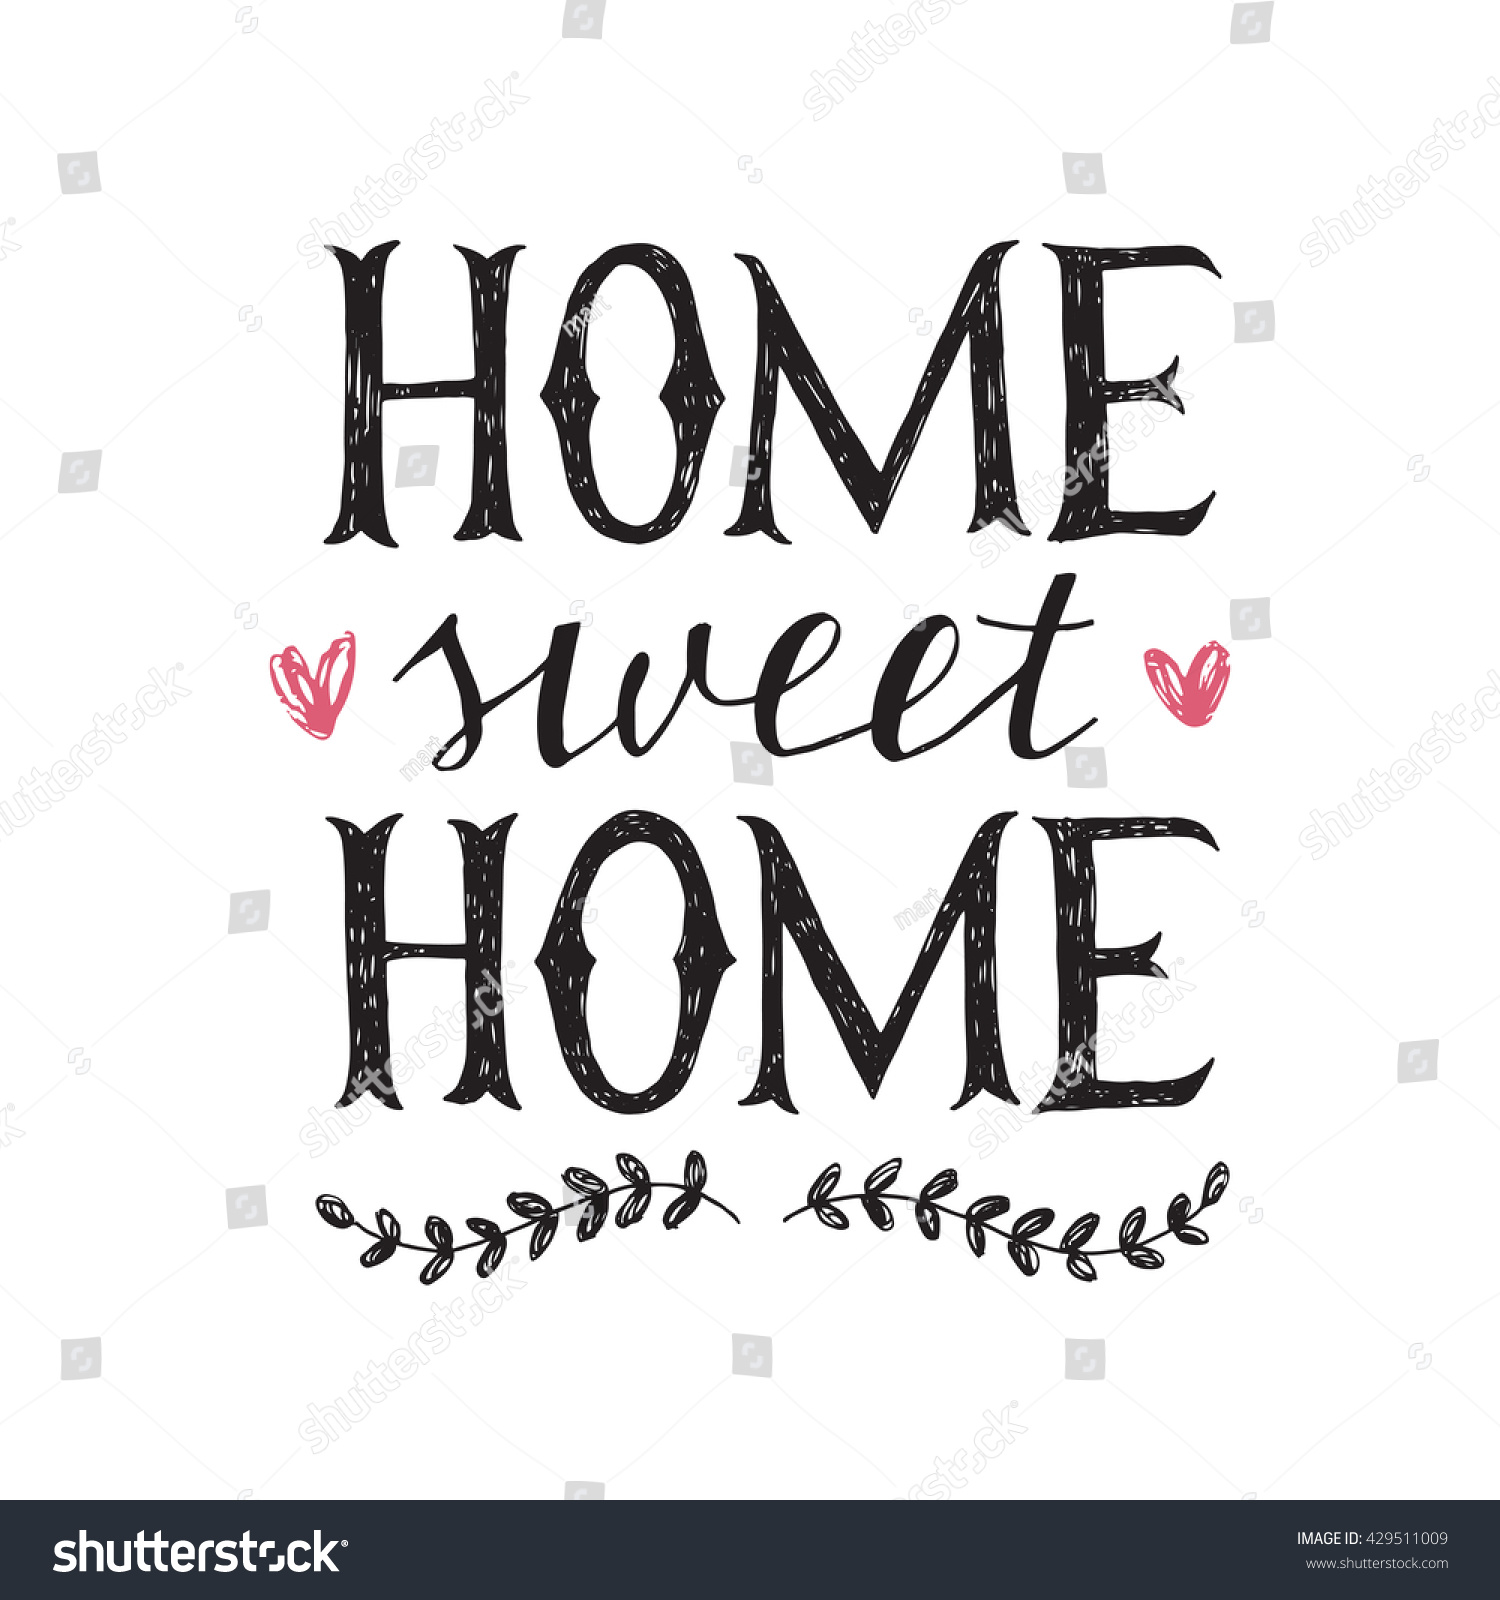 sweet home hand lettering poster stock vector 429511009 shutterstock. Black Bedroom Furniture Sets. Home Design Ideas